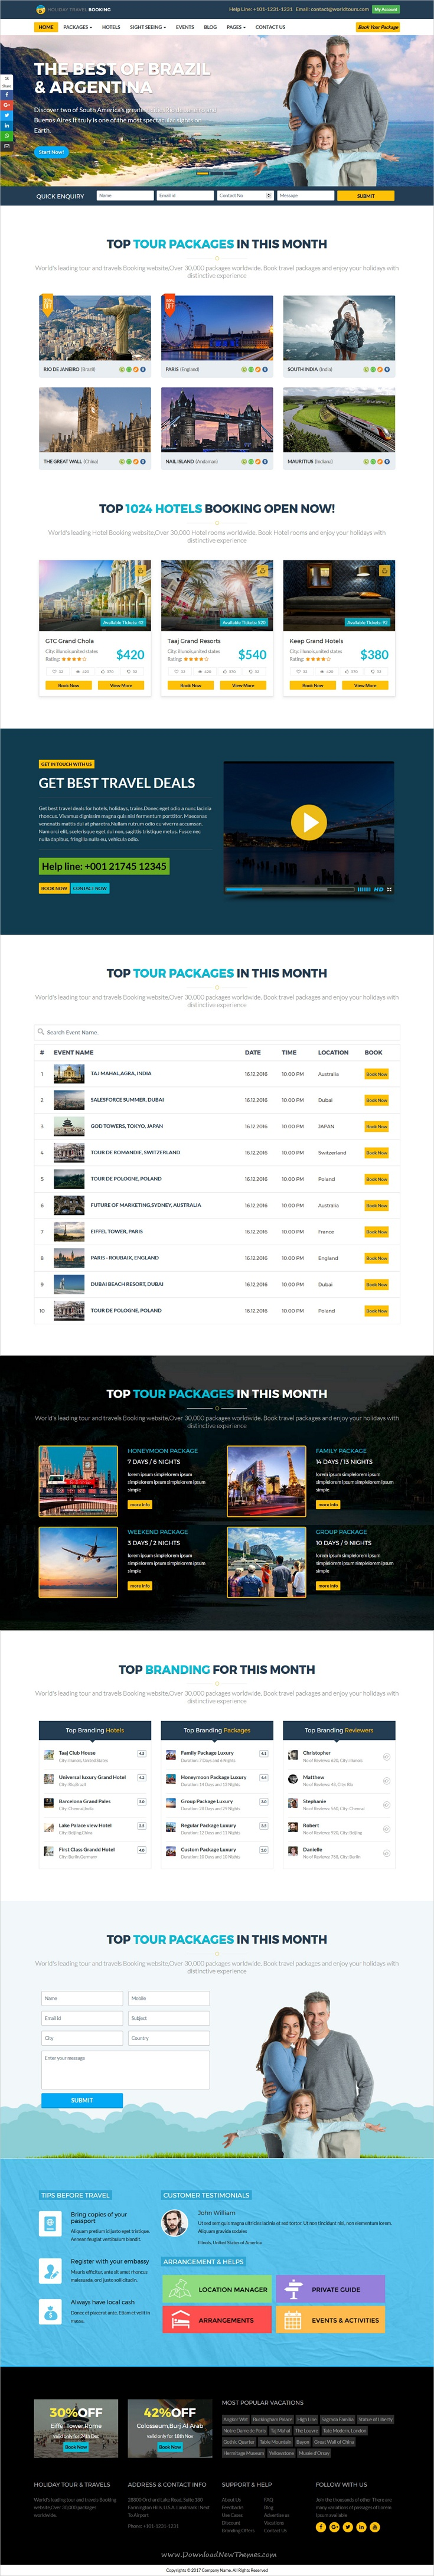 Holiday is a best responsive #HTML5 #bootstrap template for #hotel, #tour and #travel online ticket booking website download now➩  https://themeforest.net/item/holiday-hotel-and-tour-ticket-booking-online-html5-responsive-template/19411137?ref=Datasata